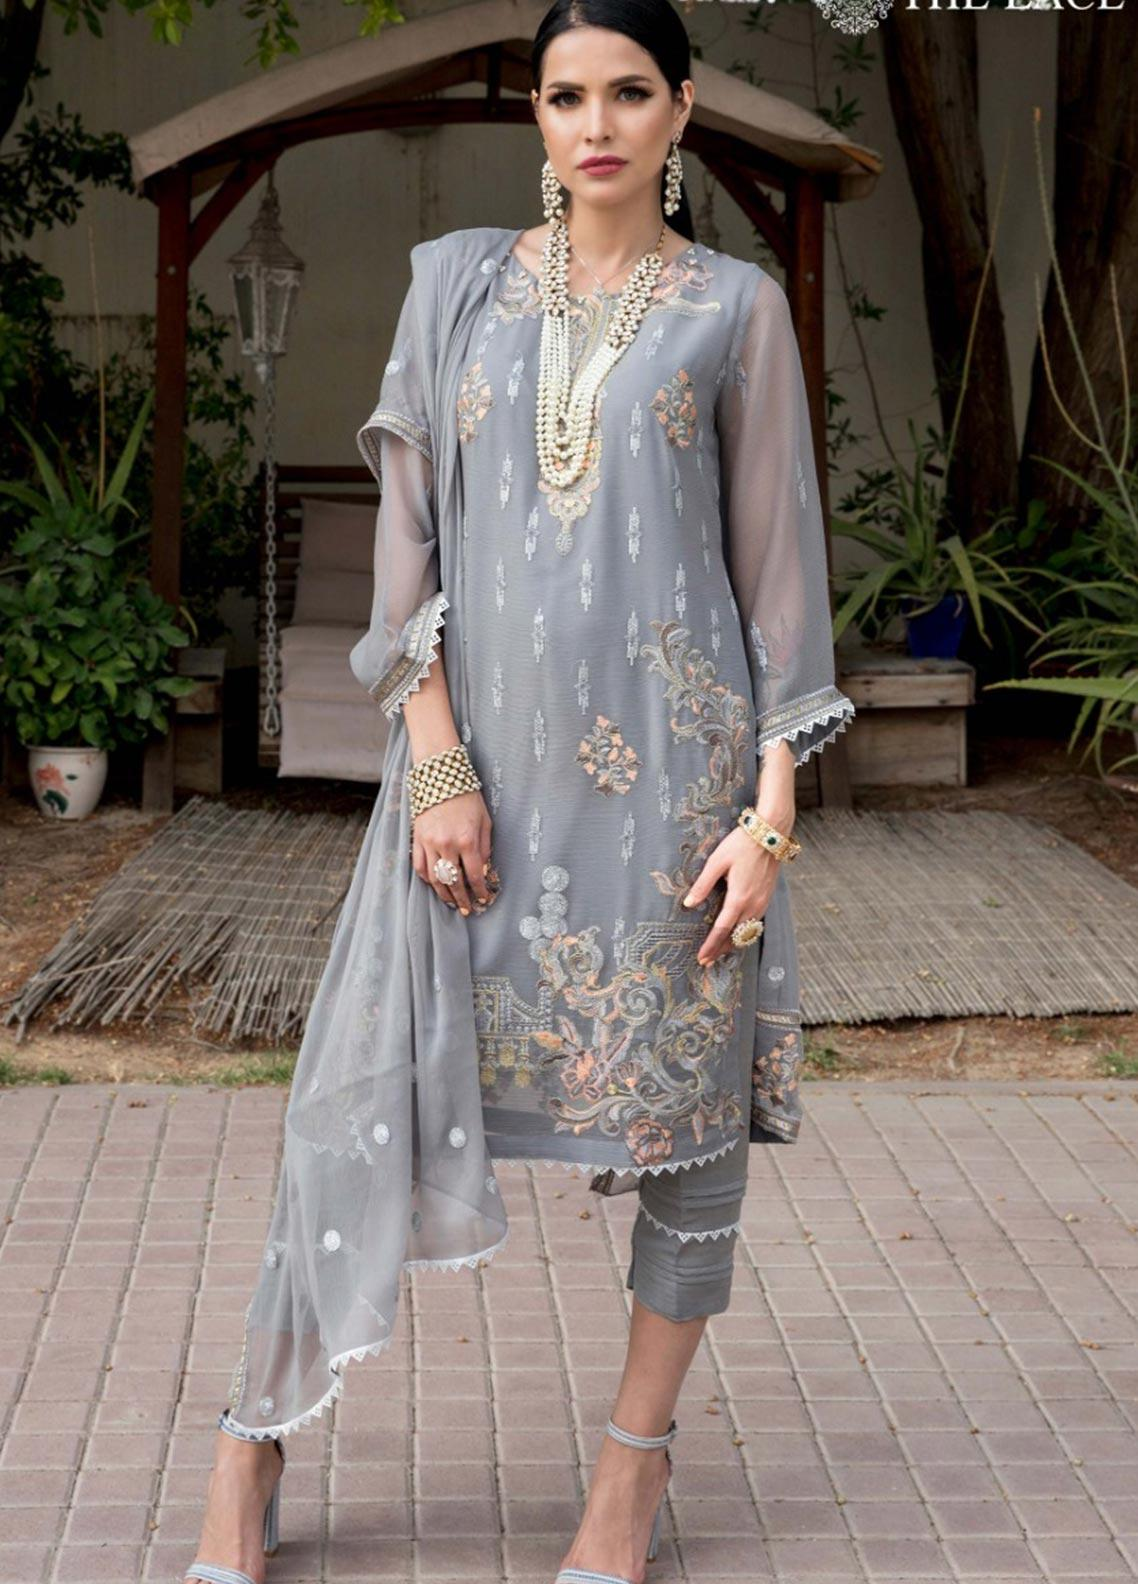 The Lace Embroidered Chiffon Stitched 3 Piece Suit 29 Cheryal